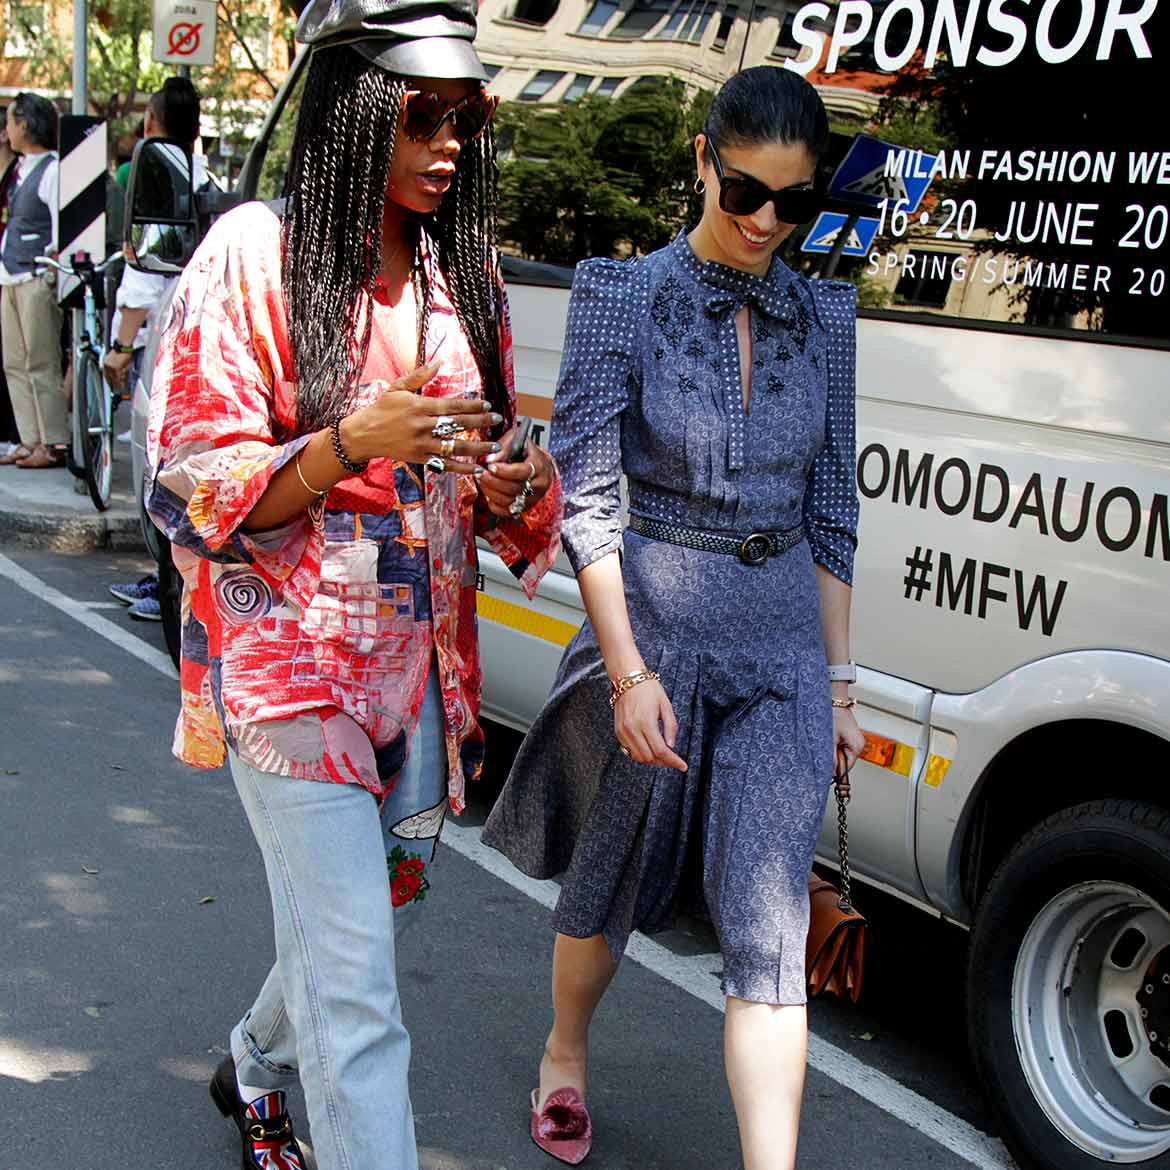 Streetstyle Milan Fashion Week zomer 2018